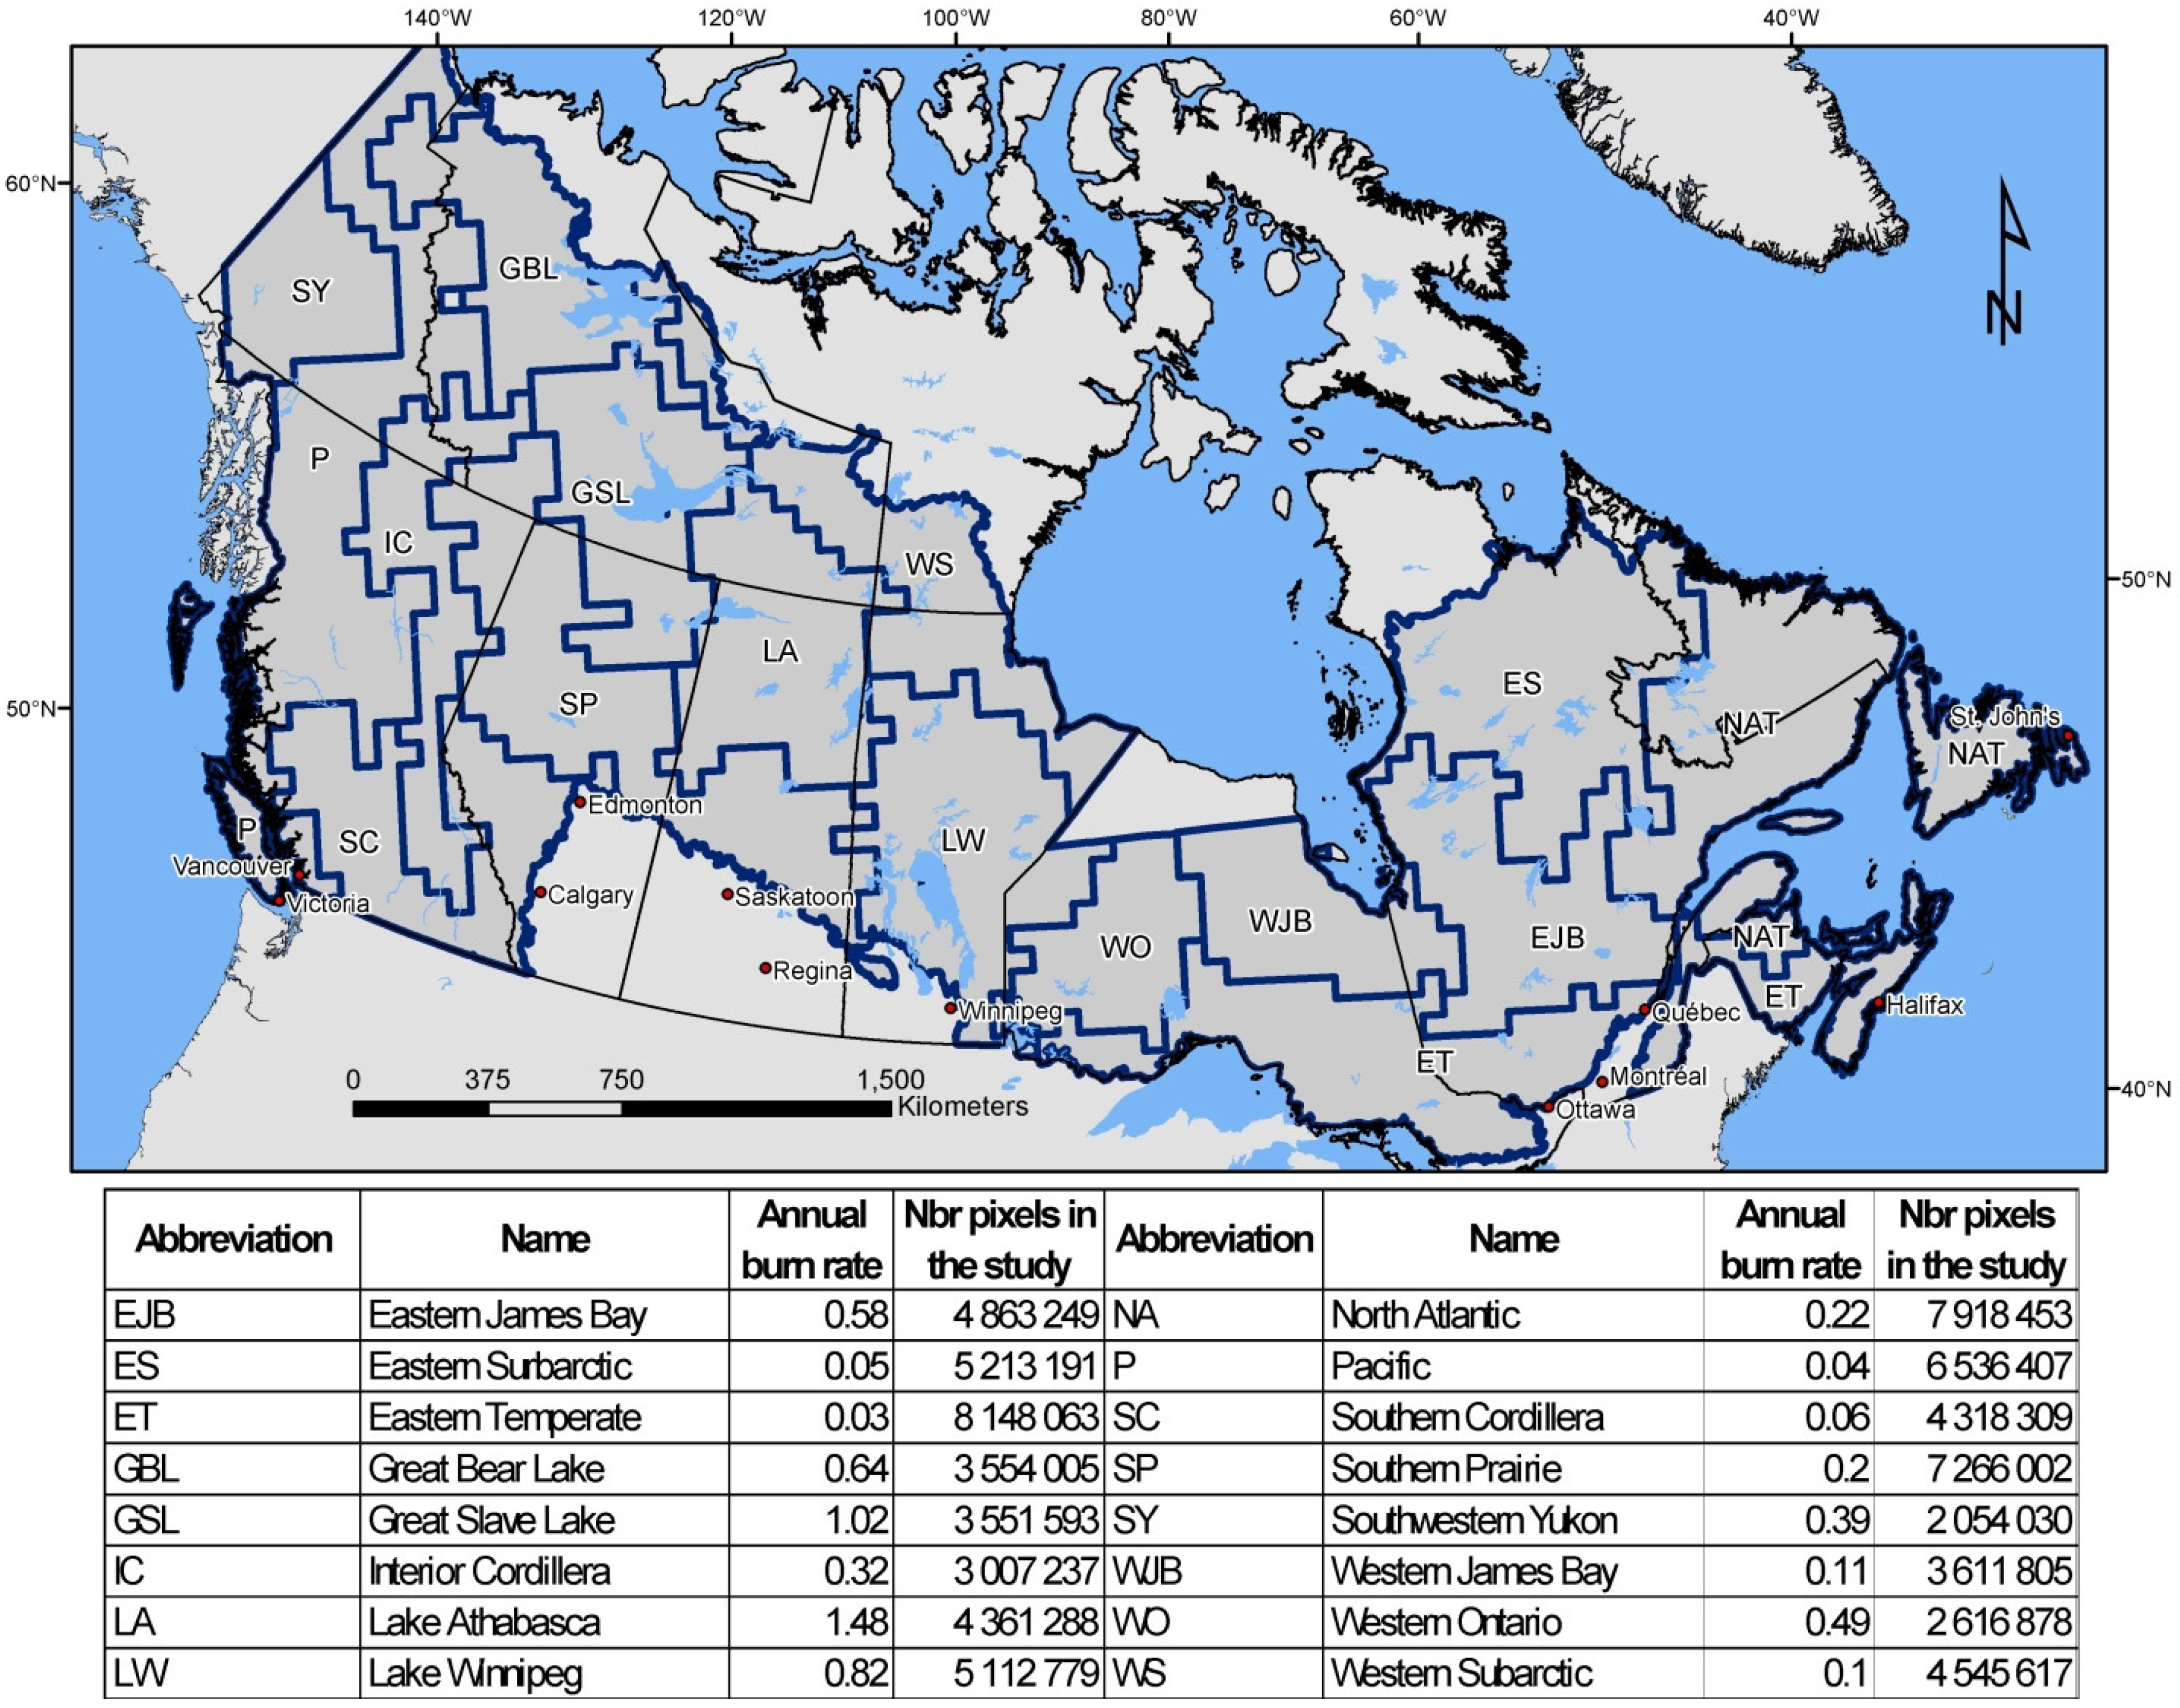 Forests | Free Full-Text | Mapping Local Effects of Forest ... on canada marijuana, canada wildfires, canada hd, canada name, canada elizabeth ii, western forest fires map, canada beach, canada mad cow, canada disease, canada is awesome, canada poverty, canada phone numbers, canada pride, canada address format, canada media fund, canada smoke, canada driver's license, canada national capital,